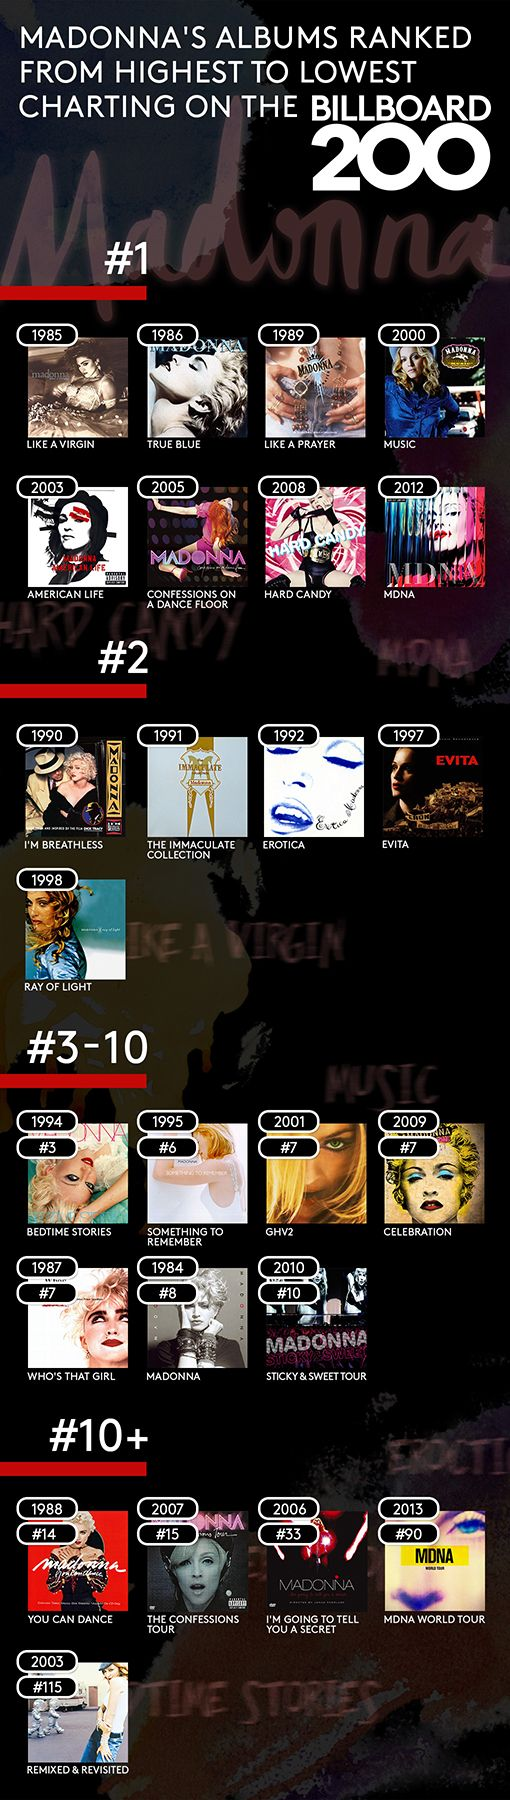 Madonna's Albums Ranked From Highest to Lowest Charting